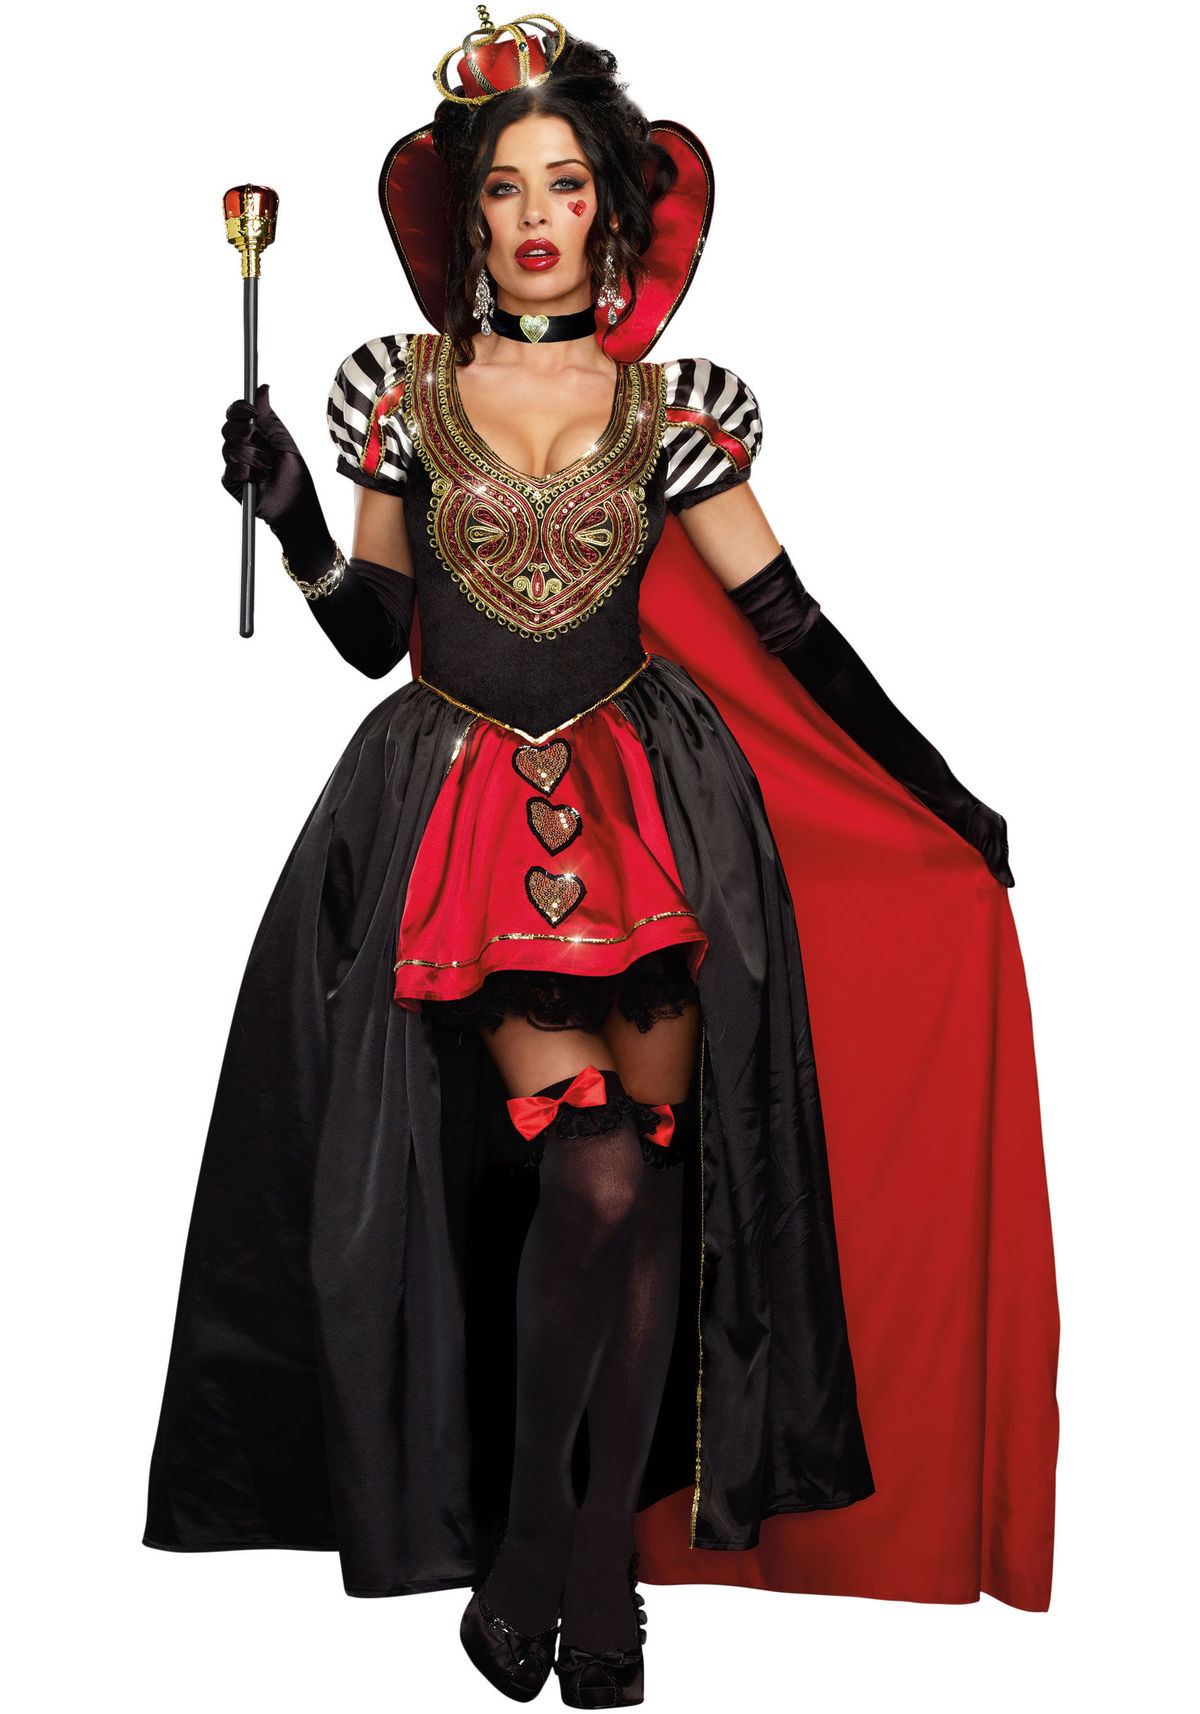 Dreamgirl 9908 Victorian Queen Of Hearts Costume | eBay